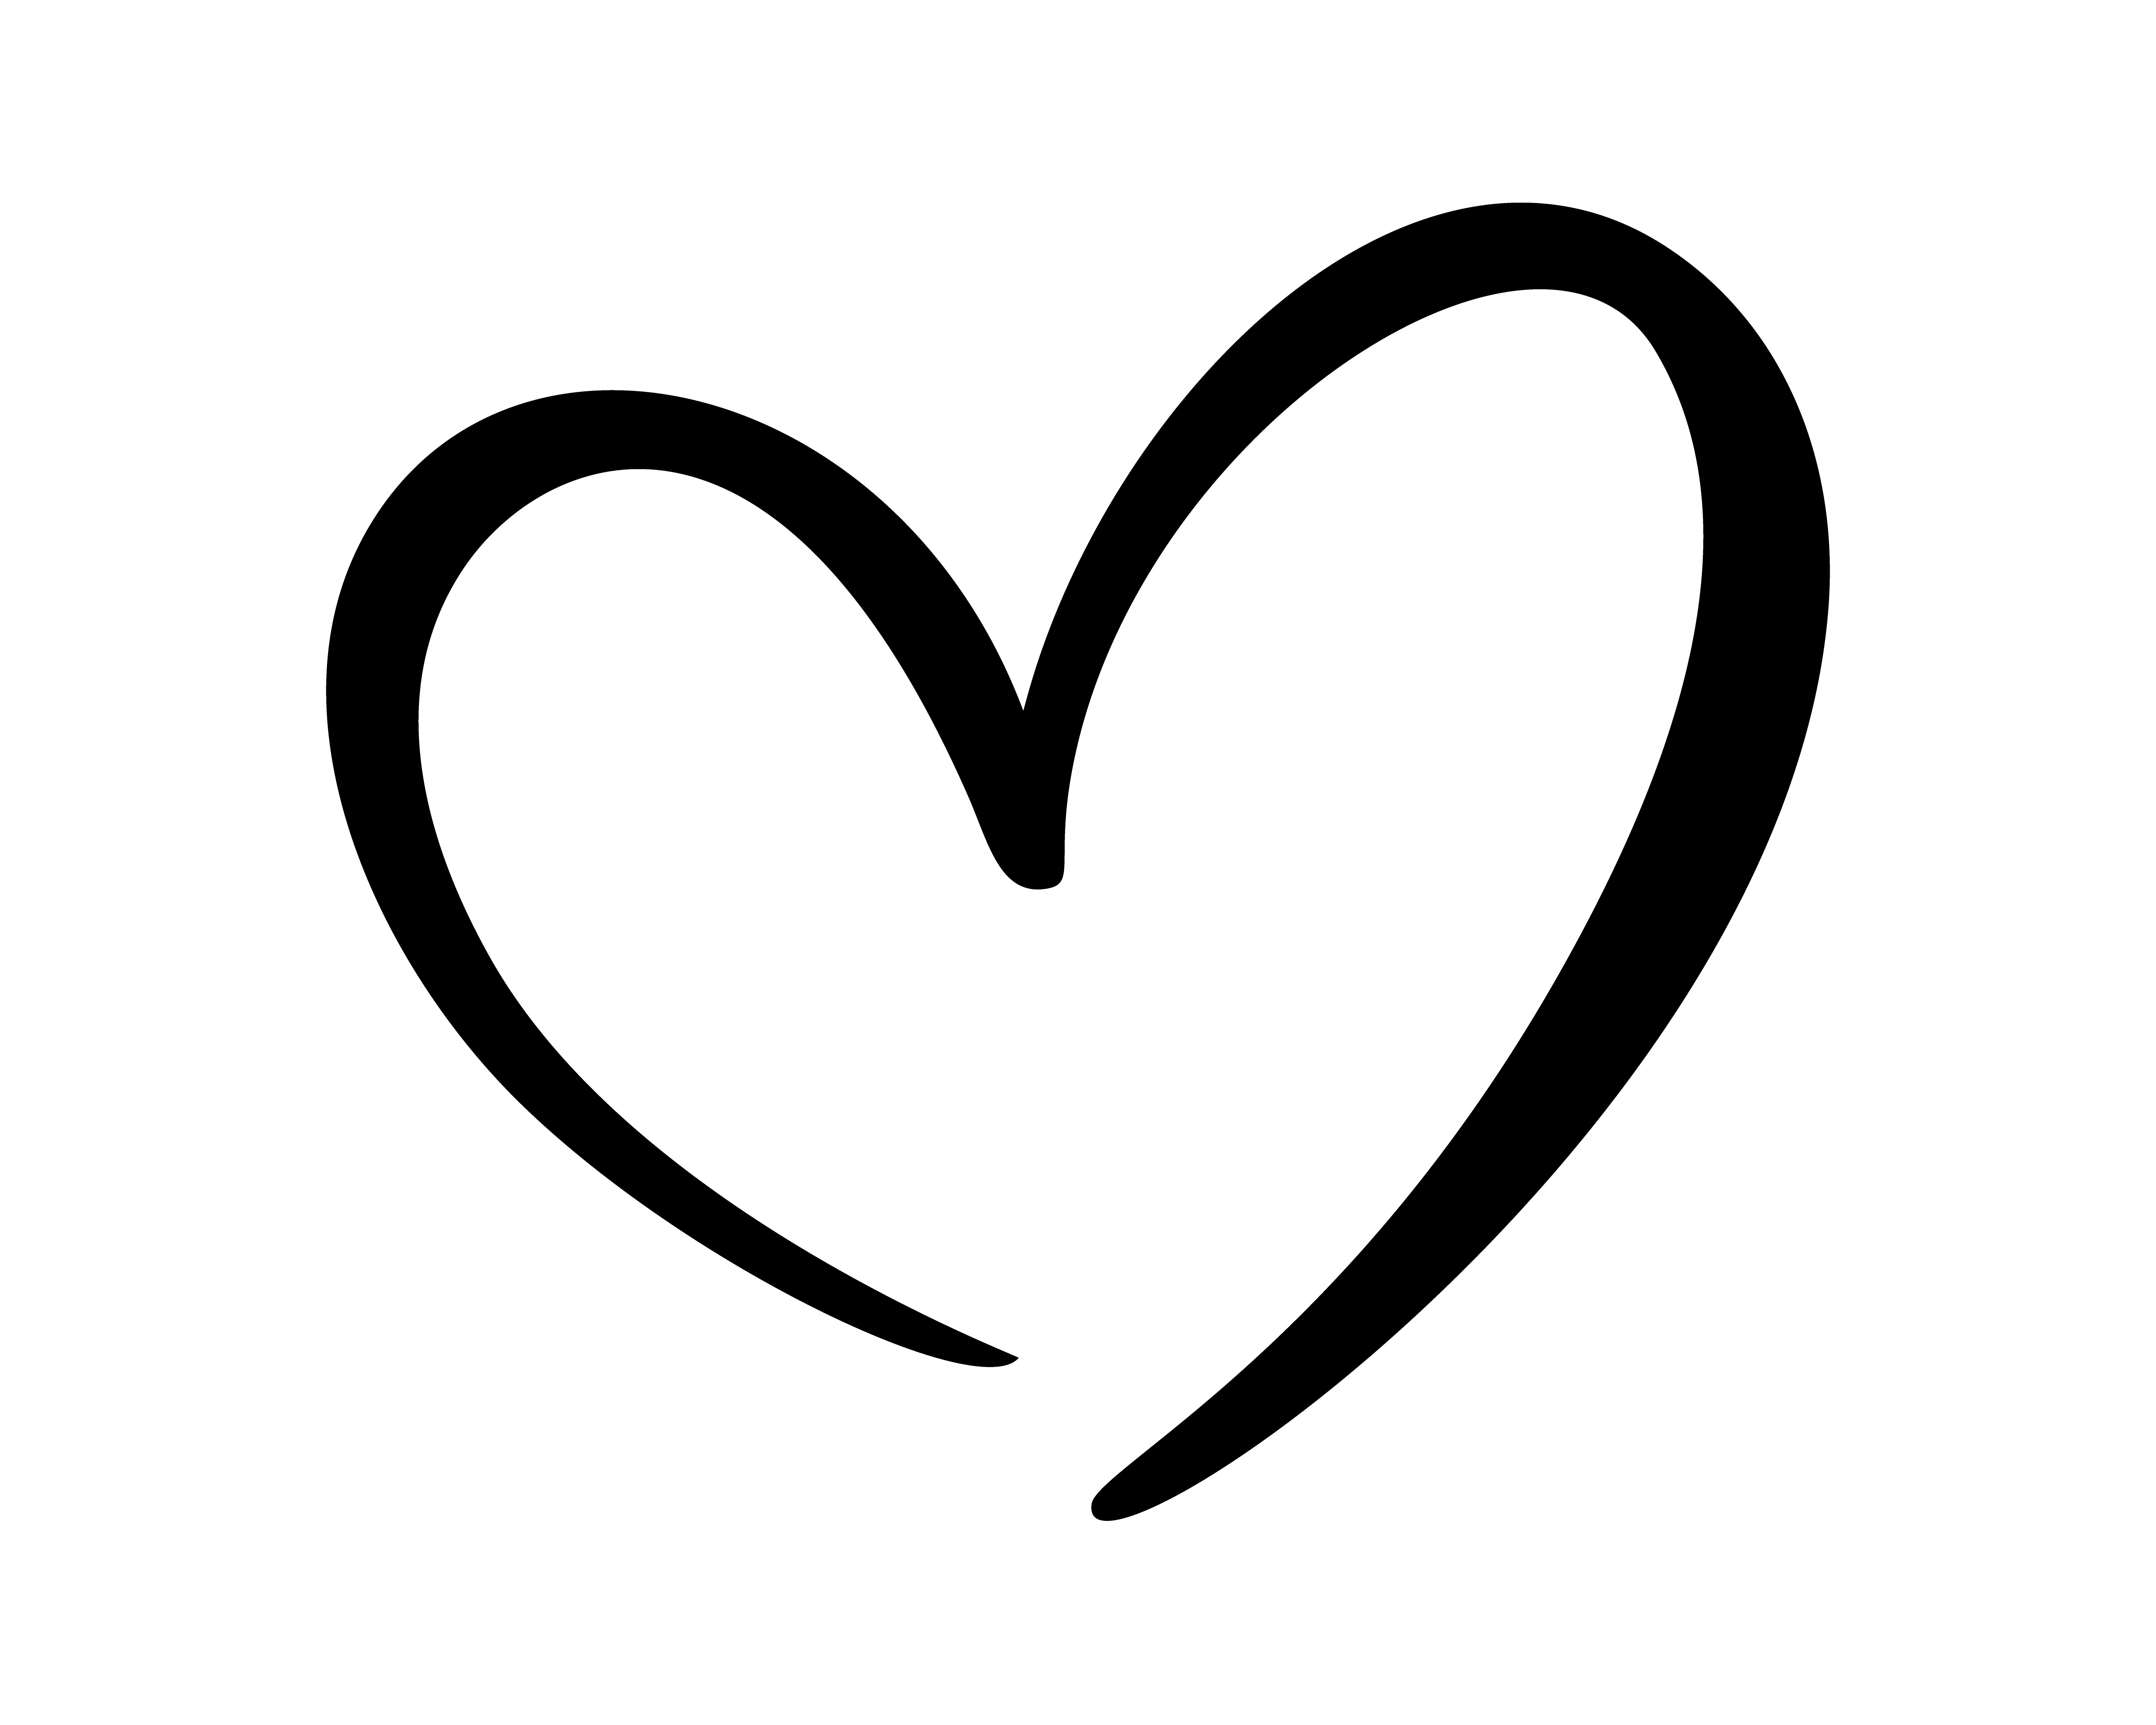 Calligraphic Love Heart Sign